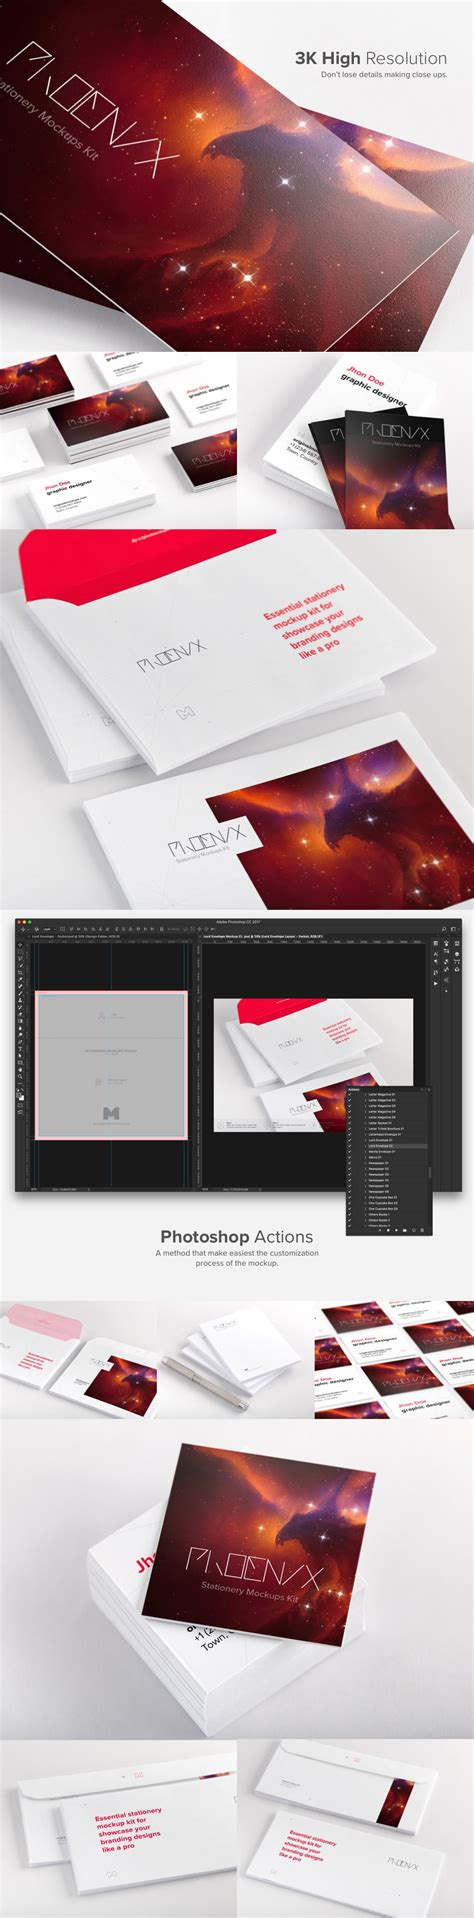 c templates the complete the complete mockup templates toolbox design cuts